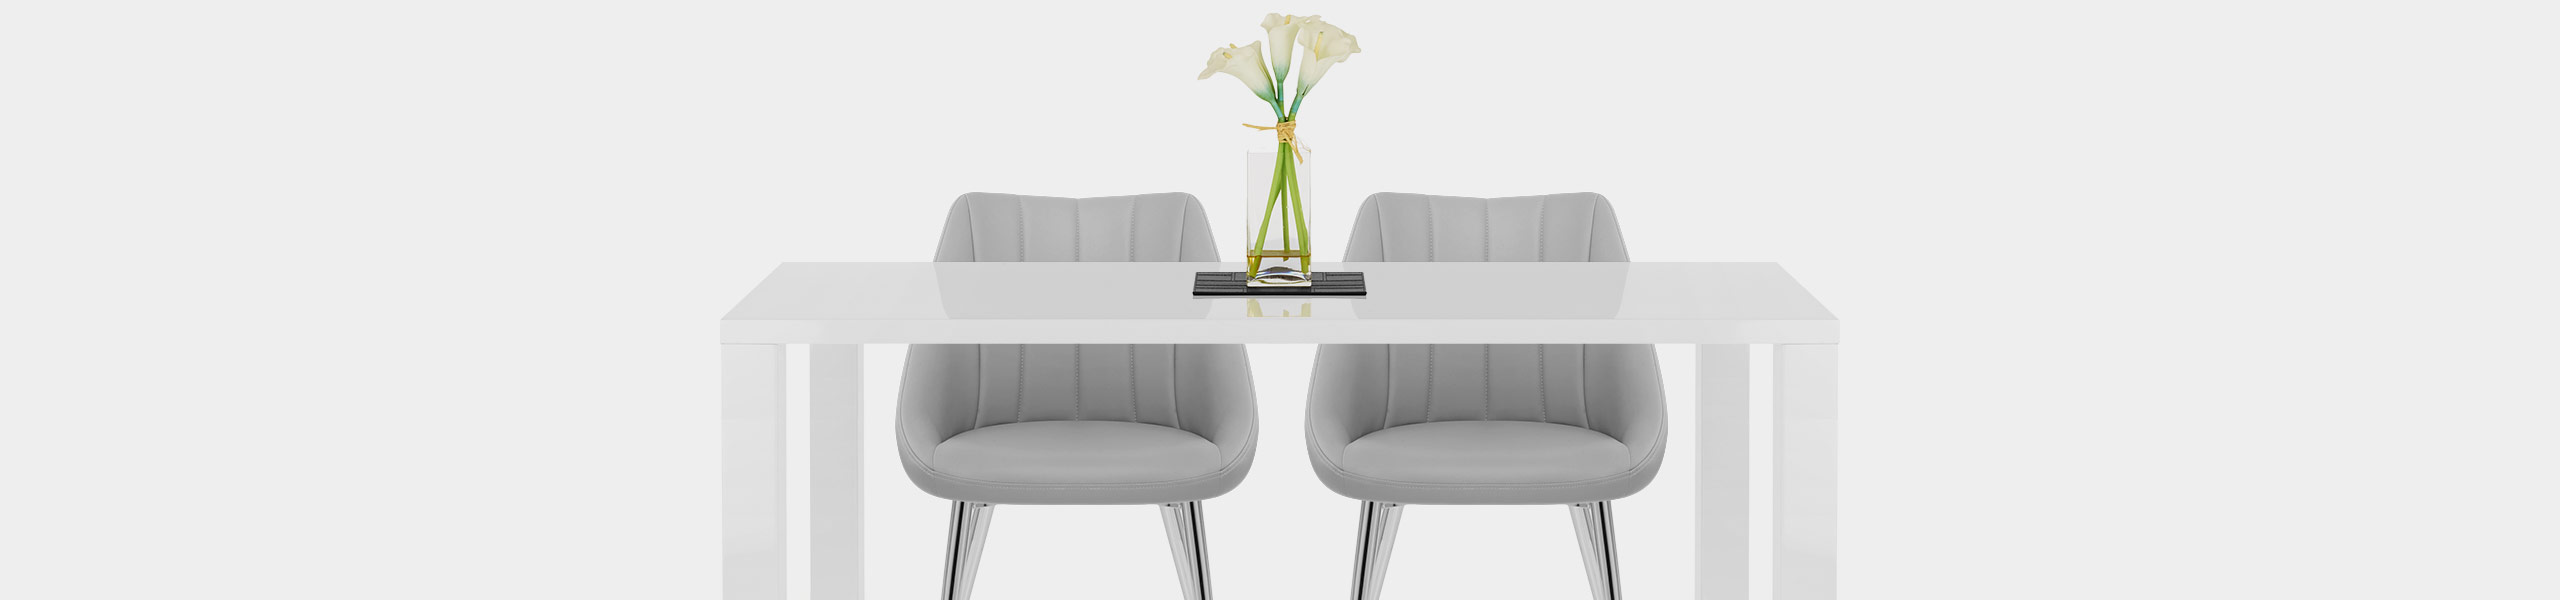 Tempo Dining Chair Light Grey Video Banner